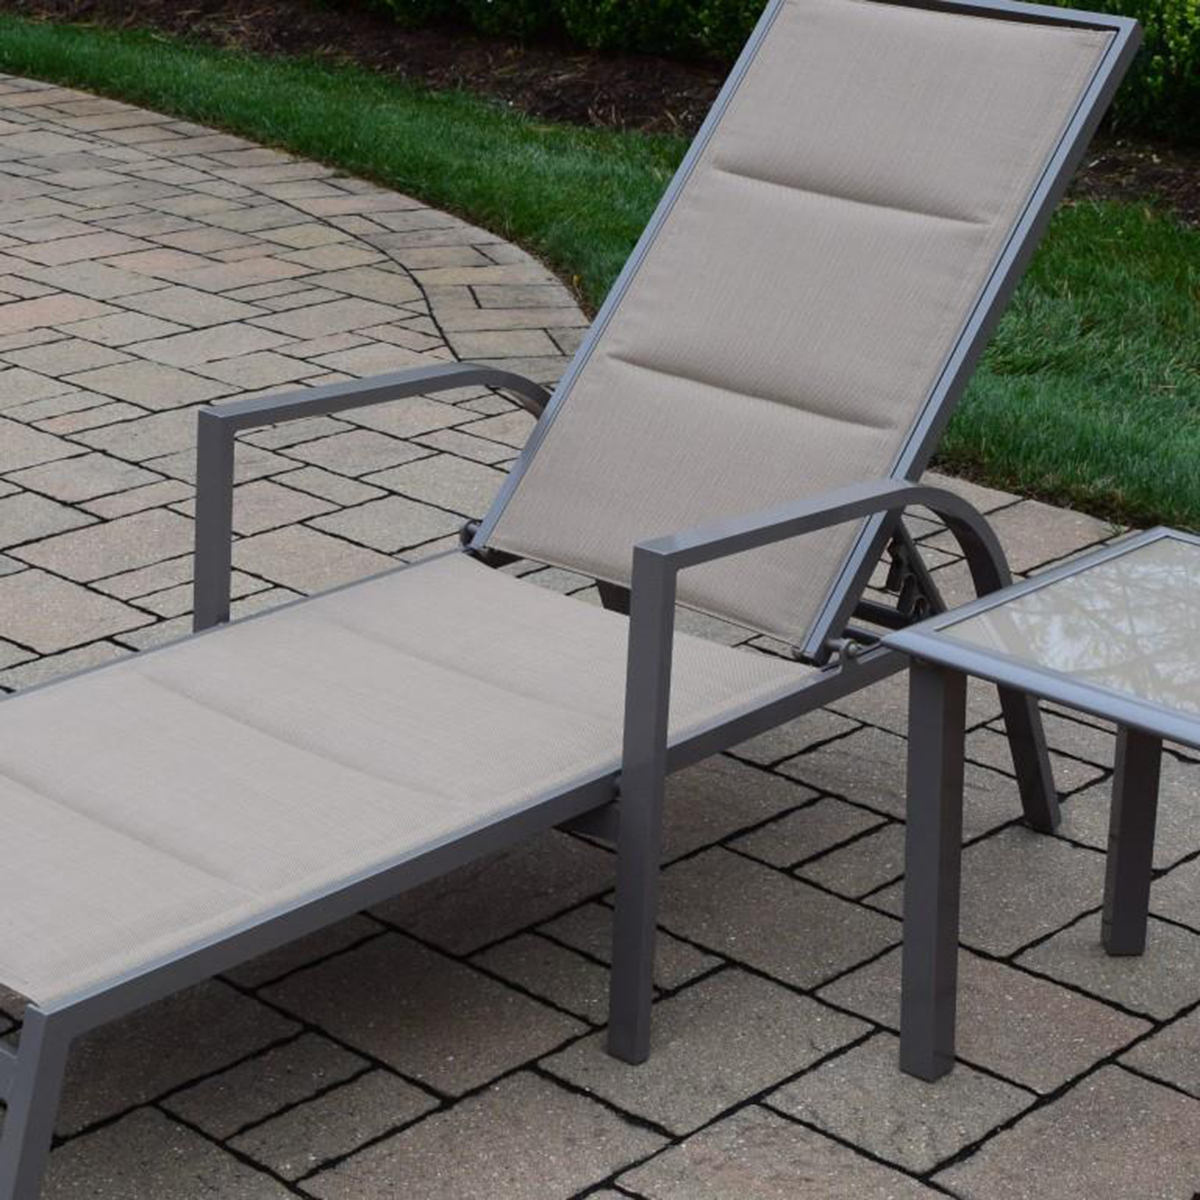 Oakland living padded sling aluminum chaise lounge and 18 for Aluminum chaise lounges